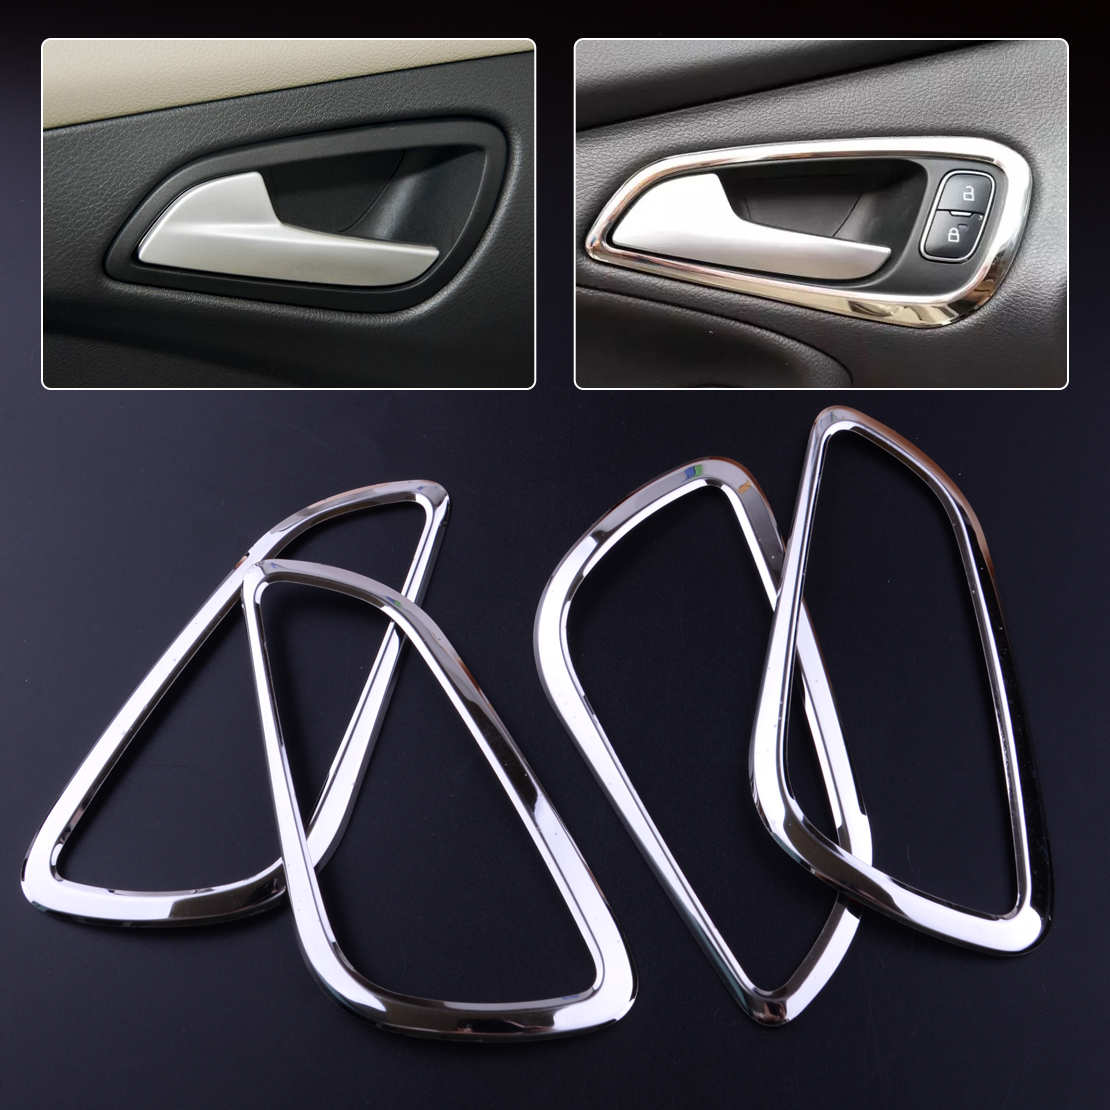 CITALL 4PCS Stainless Steel Interior Inner Car Door Handle Bowl Frame Cover Trim Decoration For Ford Focus Mk3 2012 2013 2014